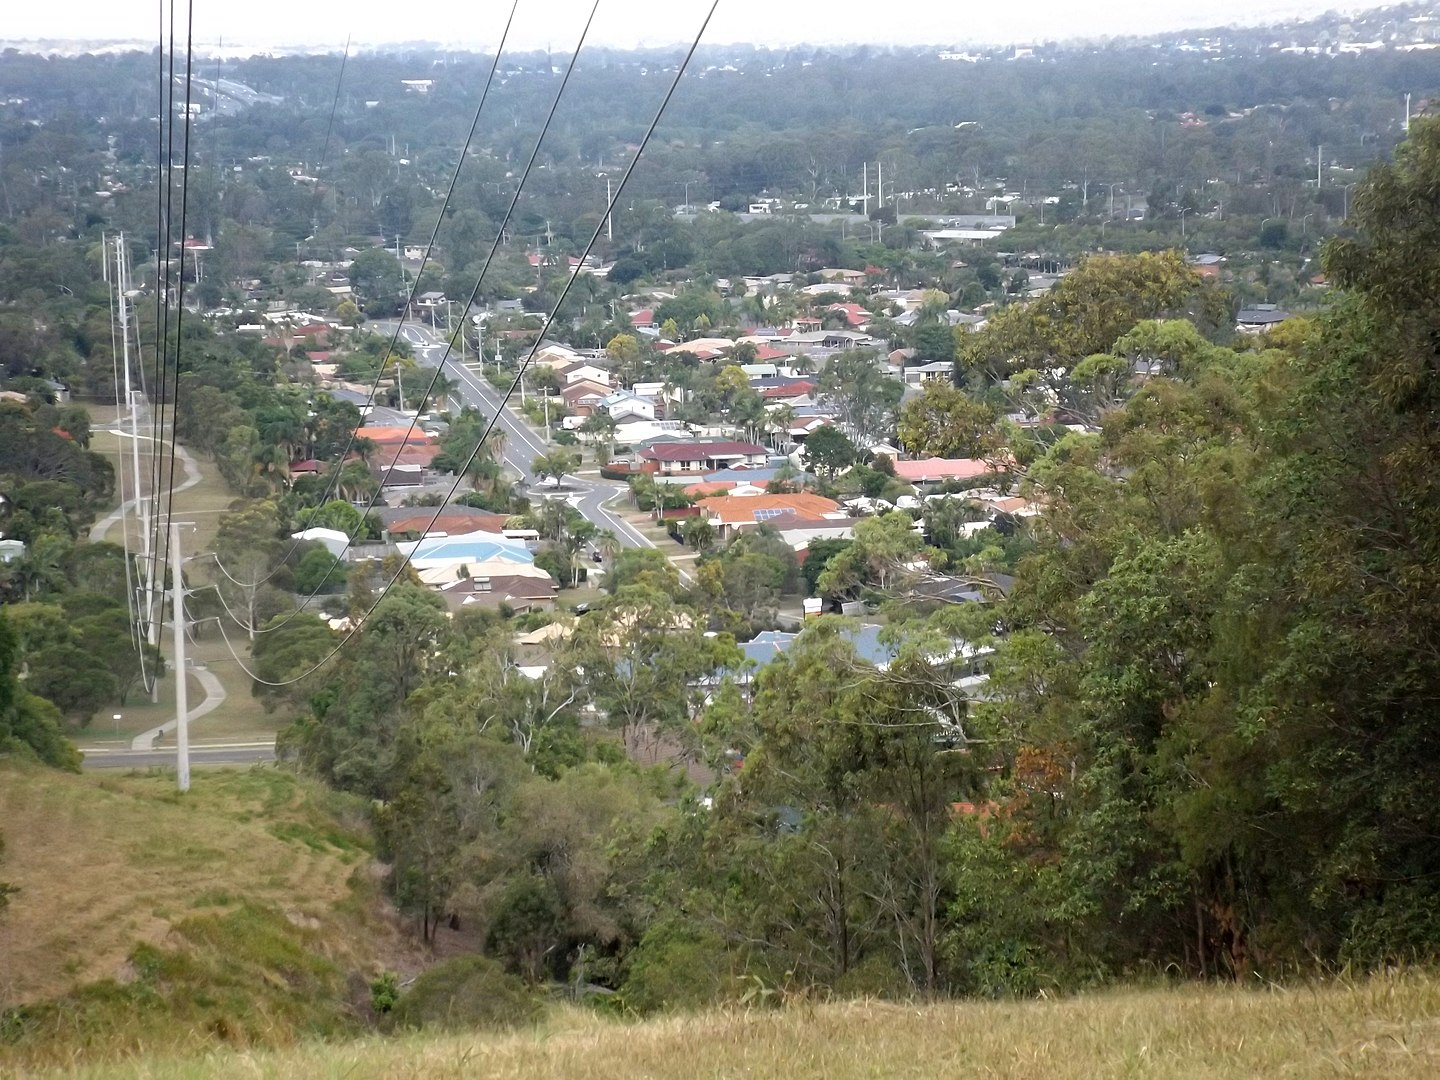 1440px-View_south_from_hill_in_Tanah_Merah,_Queensland